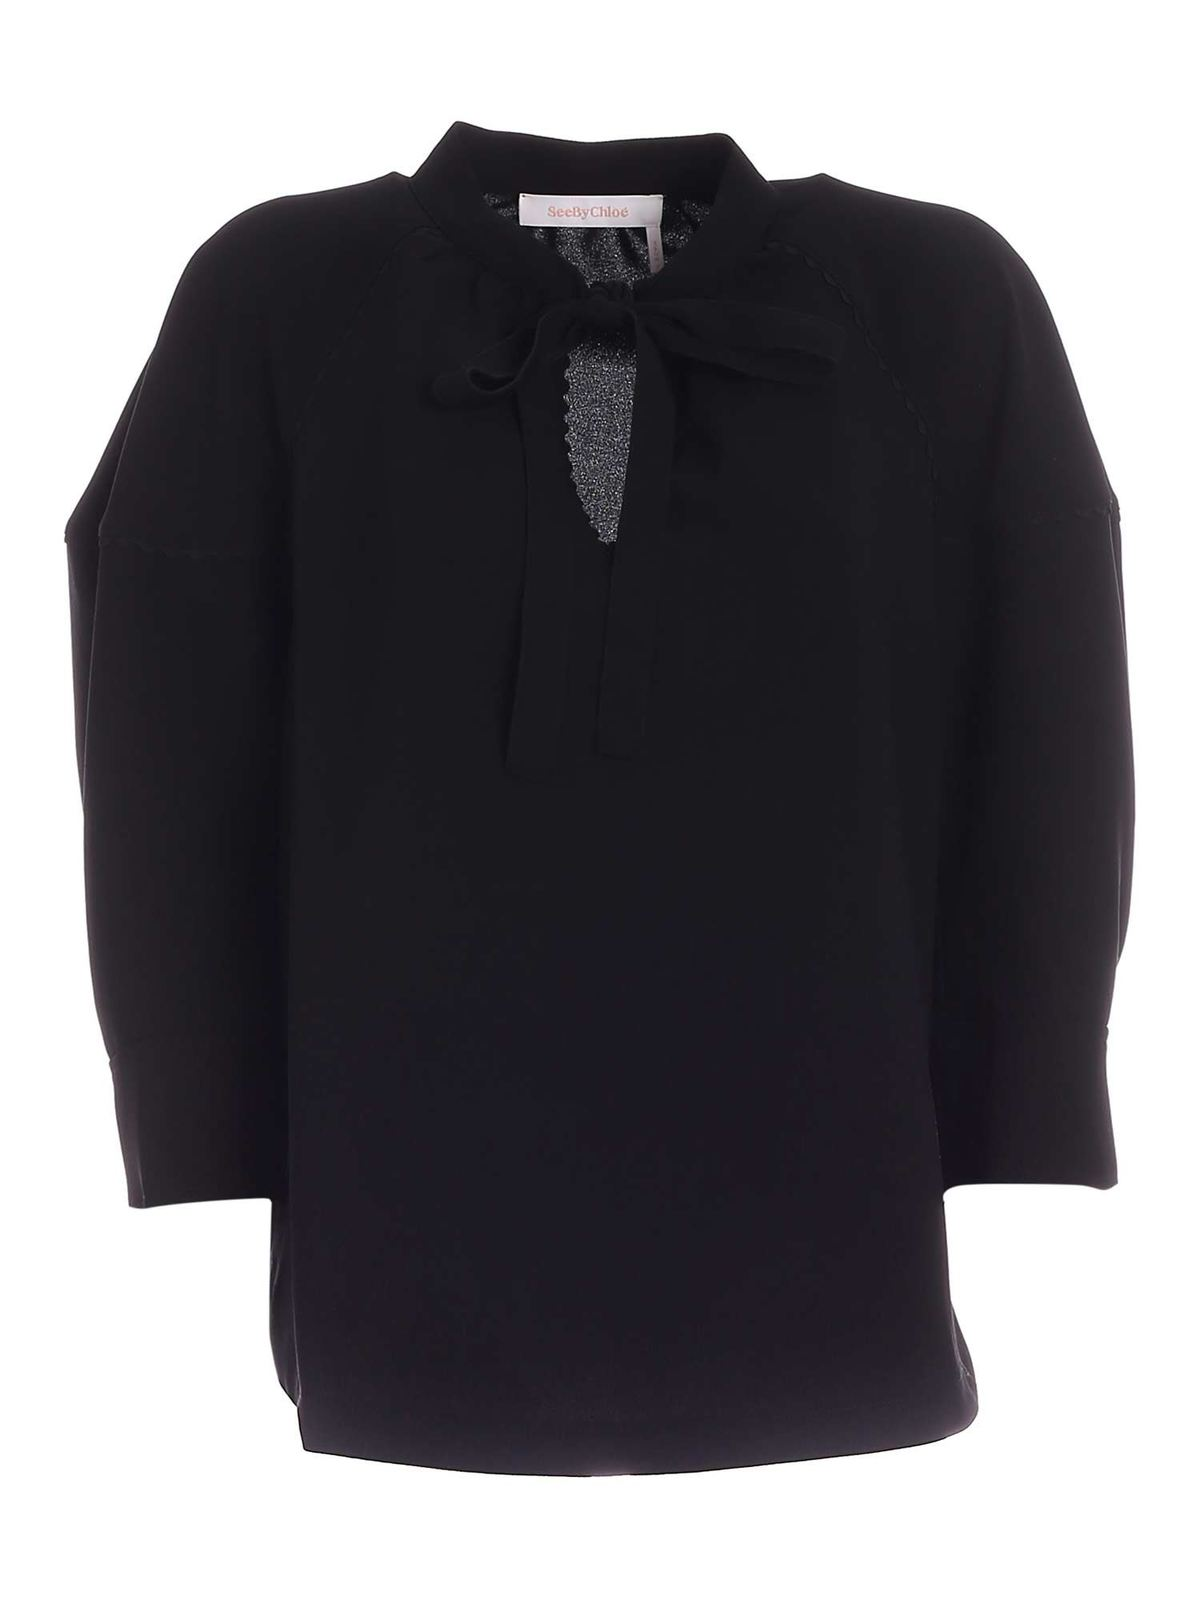 See By Chloé Blouses BOW BLOUSE IN BLACK